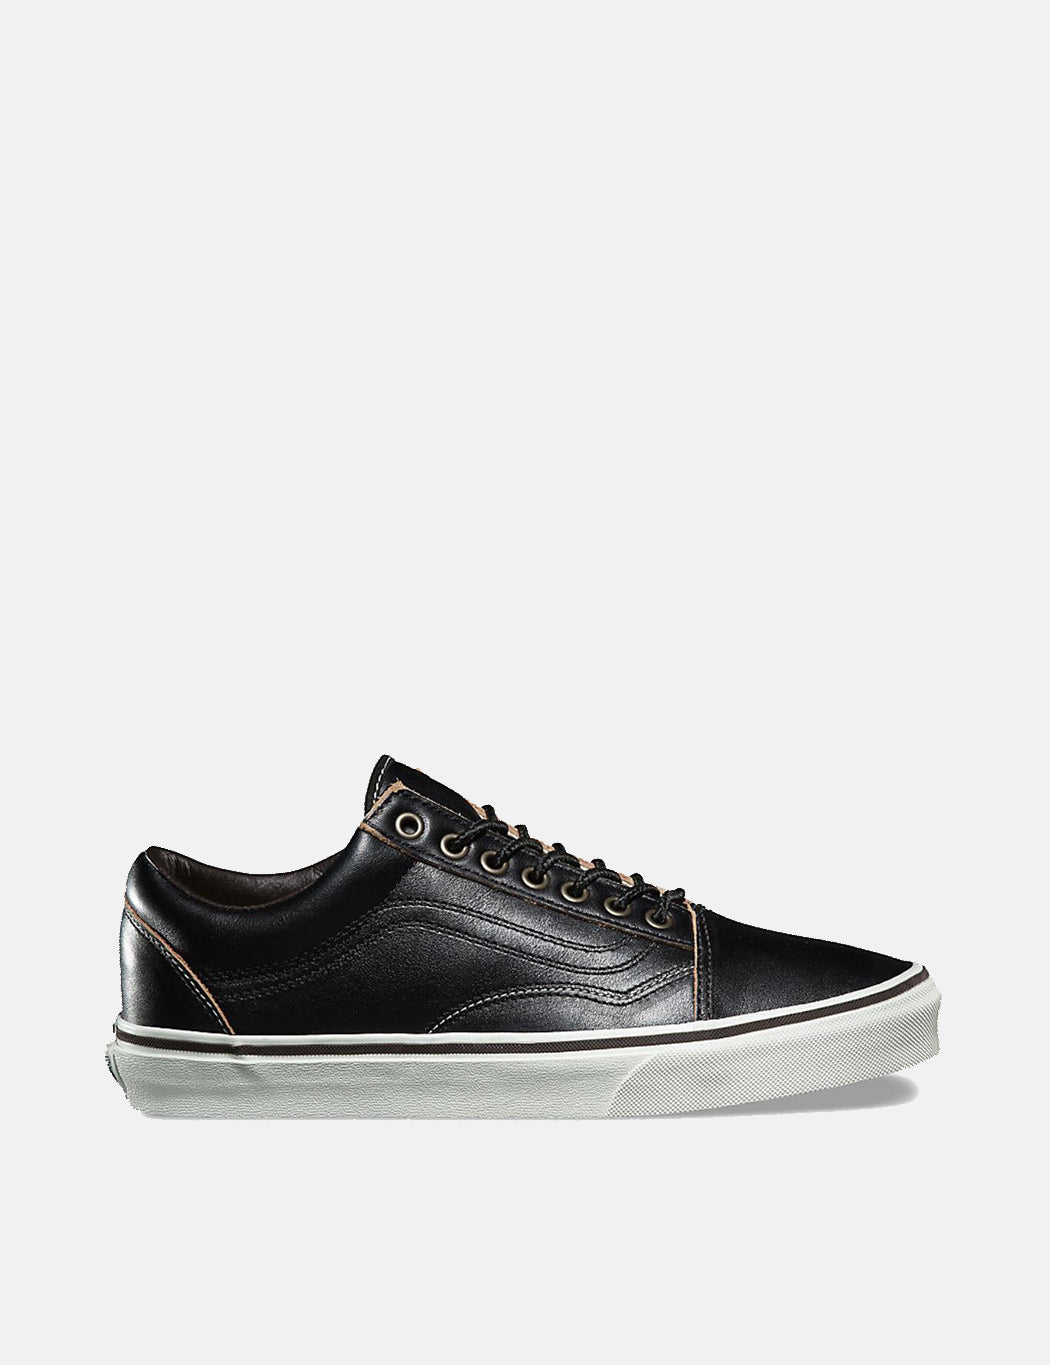 Vans Old Skool (Premium Leather) - Black  ce01a077ea9c